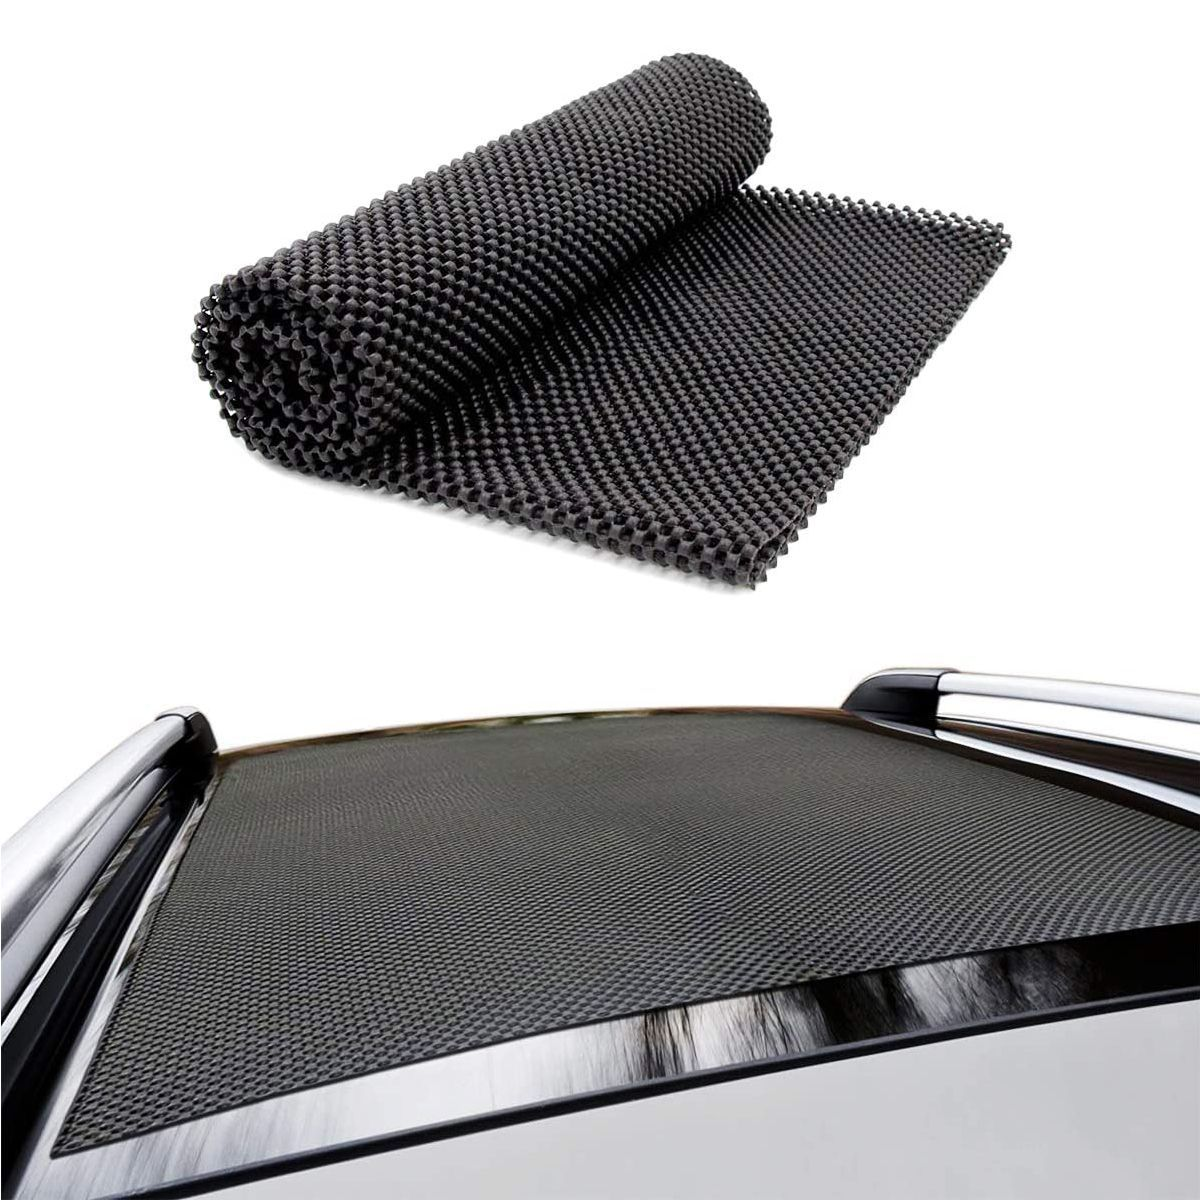 Black HandiRack Universal Roof Rack Anti-Slip Pads